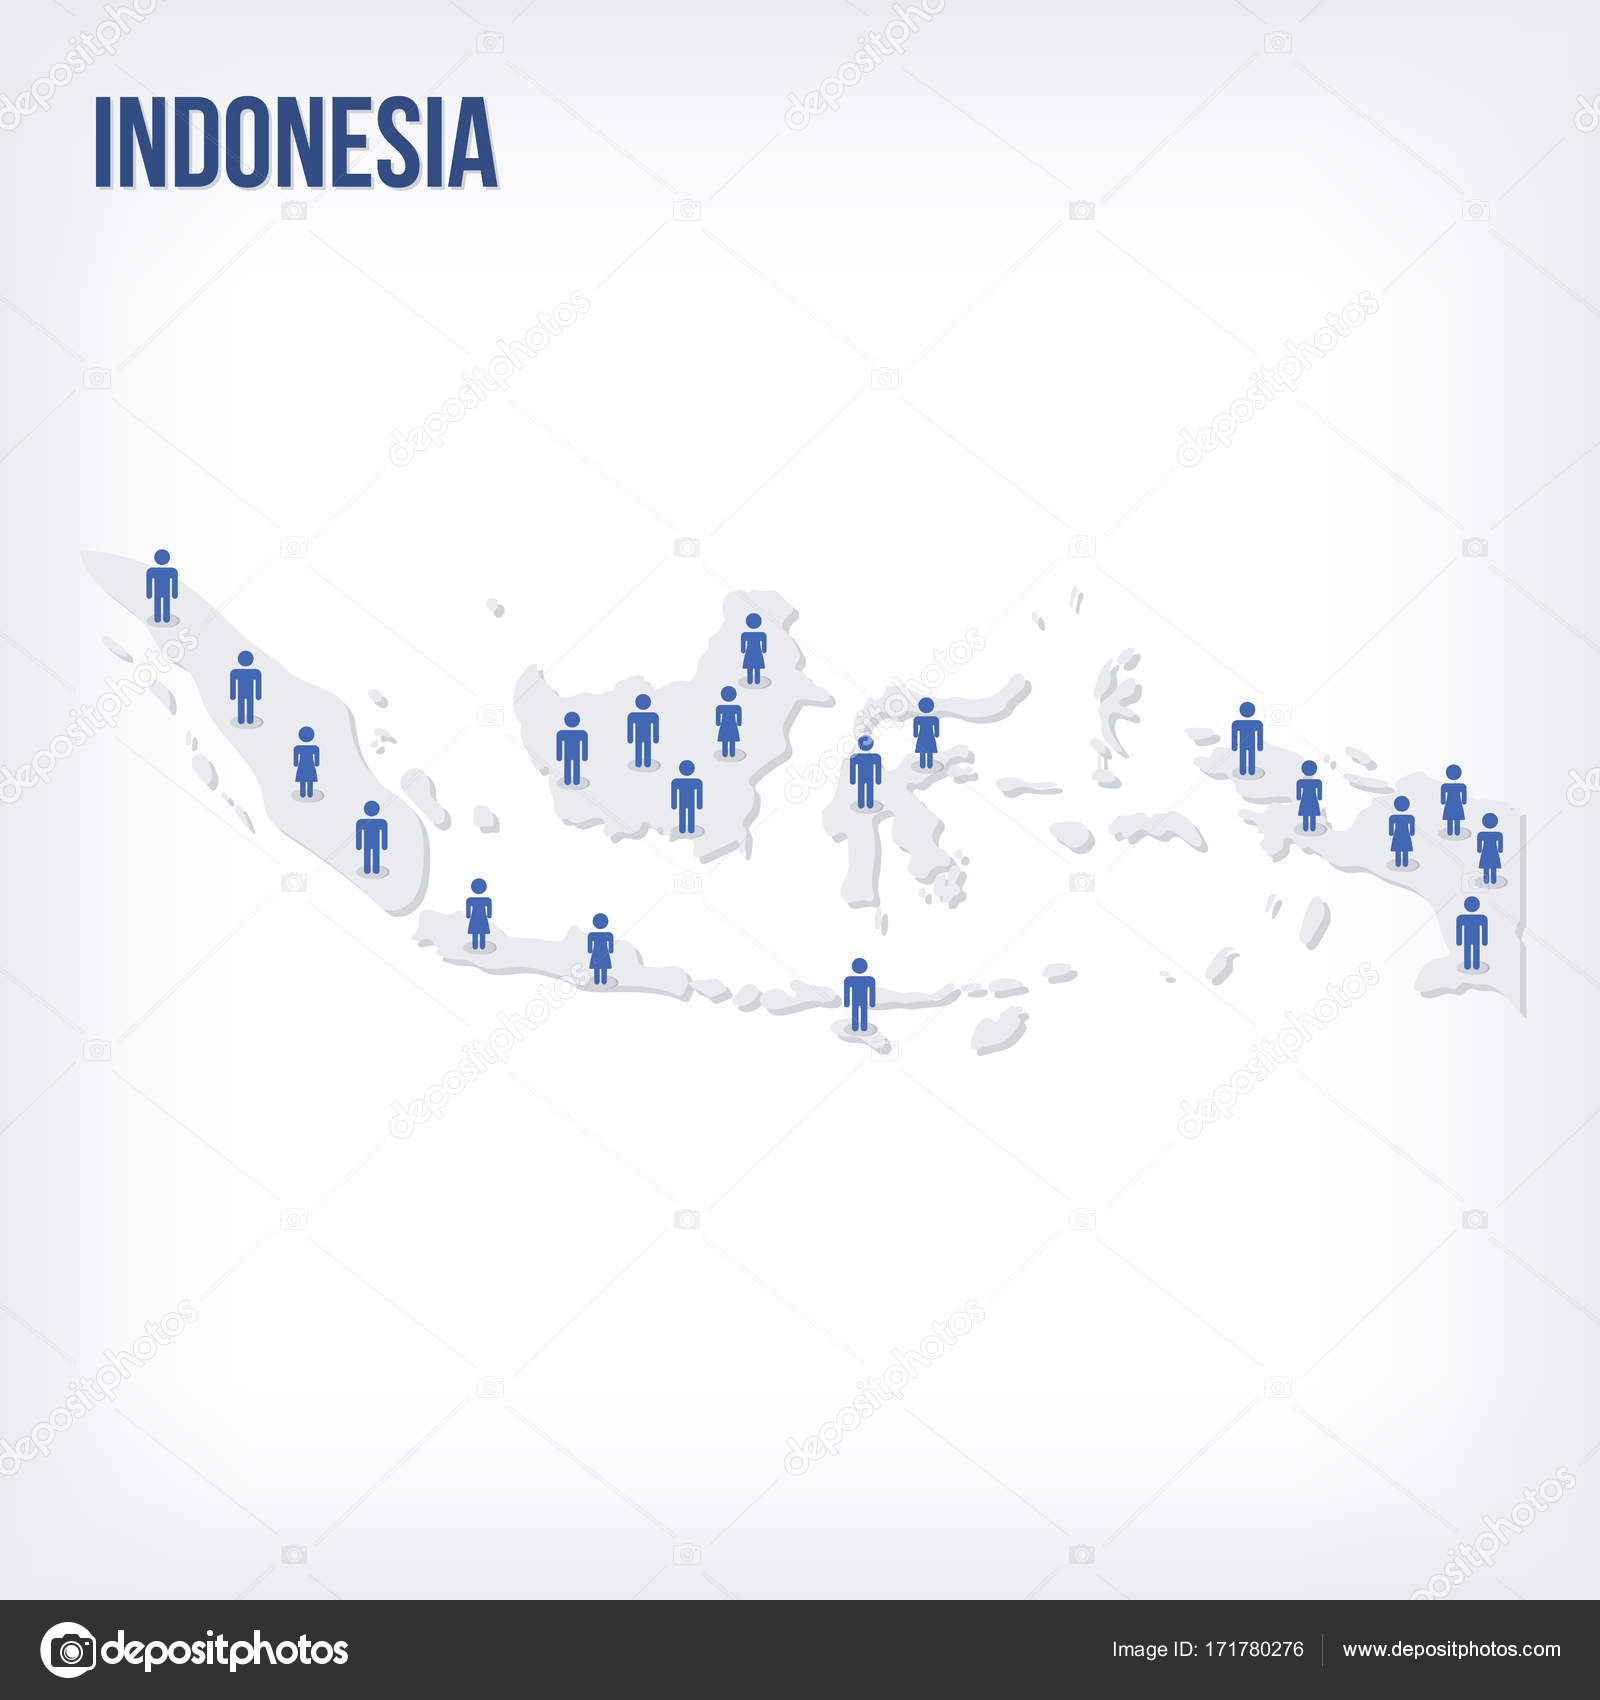 Vector People Map Indonesia Concept Potion Can Used ... on current events maps, environmental issues maps, horse track maps, service provider maps, professional networking maps, interview maps, market growth maps, trade show maps, designing maps, misleading maps, ancient world history maps, large format maps, radio coverage maps, visual thinking maps, commercial maps, primitive maps, cartography maps, exclusive distribution maps, computer game maps, top 10 maps,